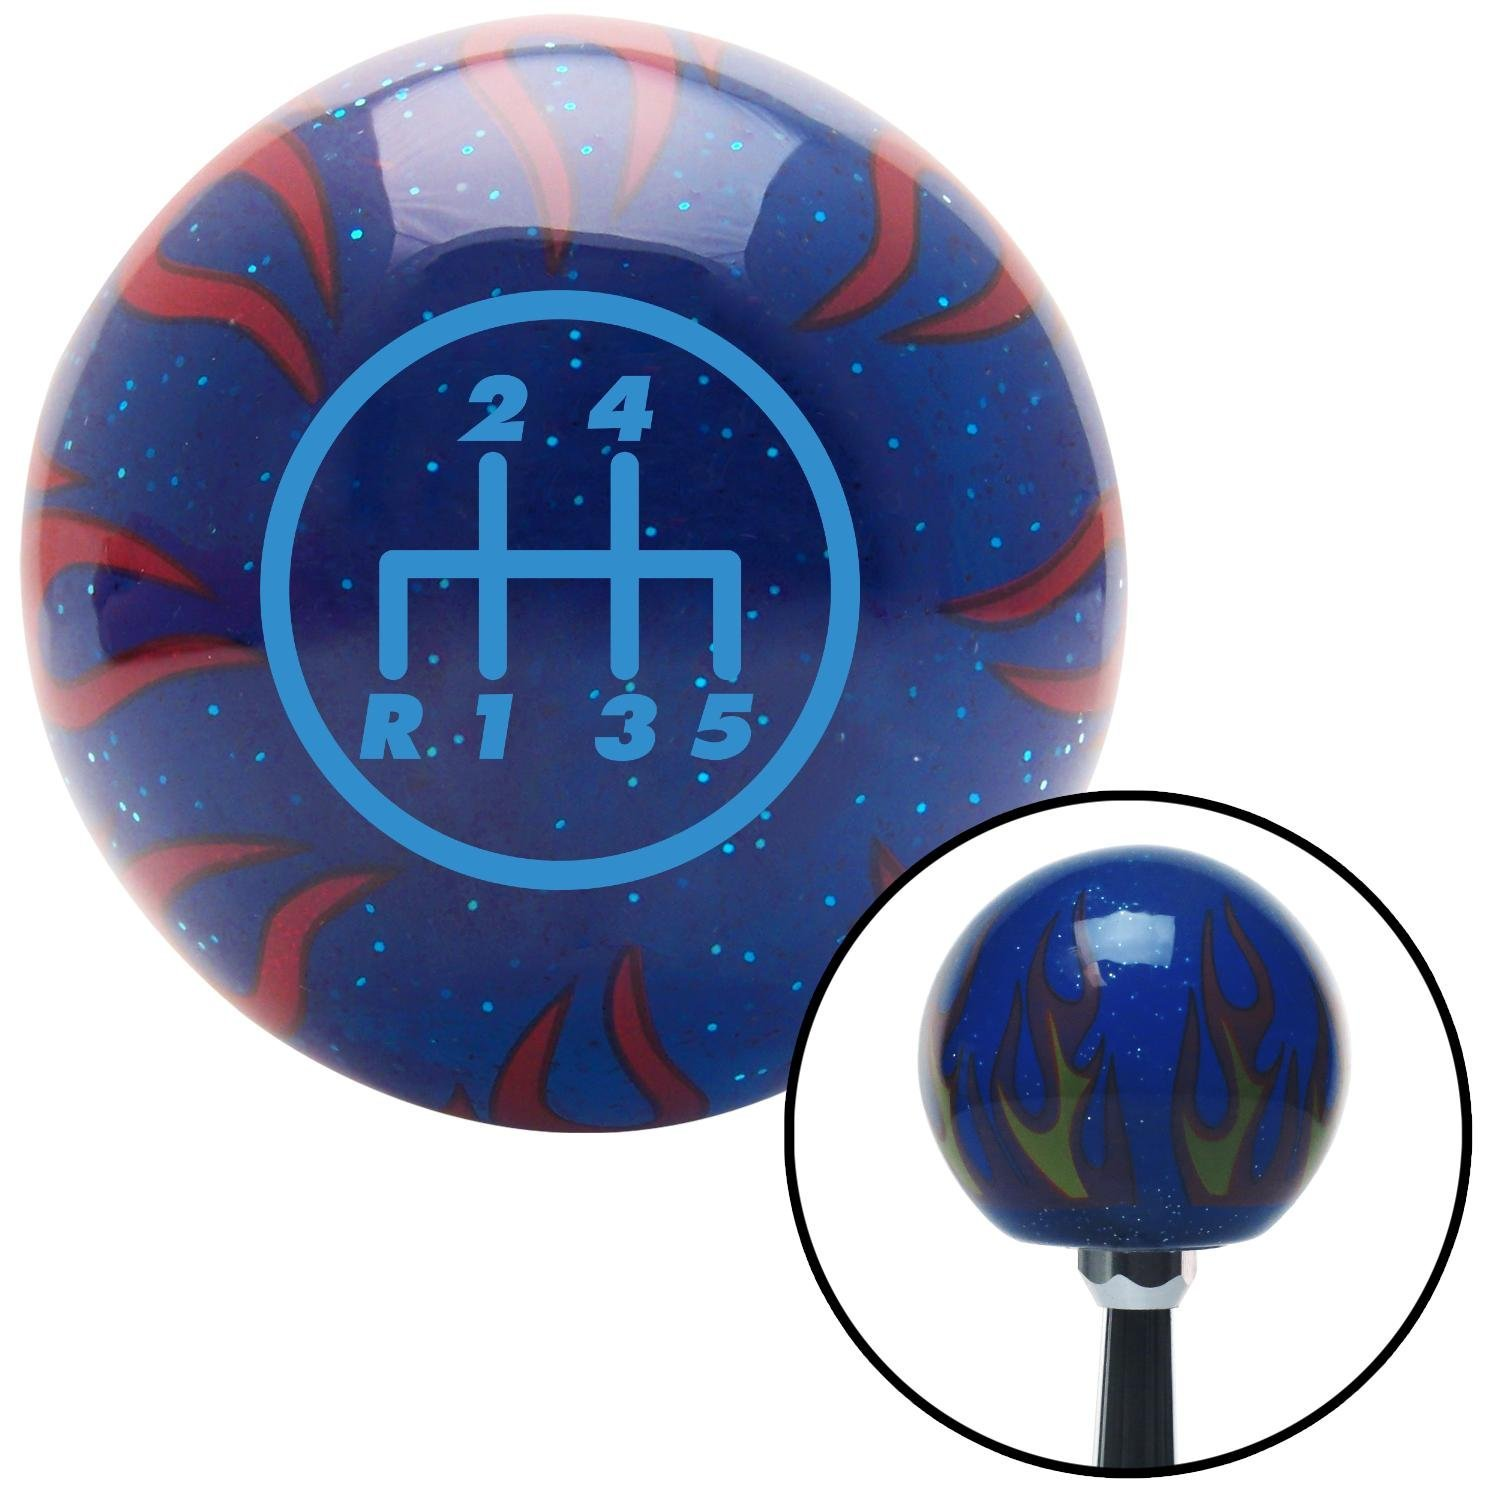 American Shifter 243811 Blue Flame Metal Flake Shift Knob with M16 x 1.5 Insert Blue 5 Speed Shift Pattern - 5DR-RDL